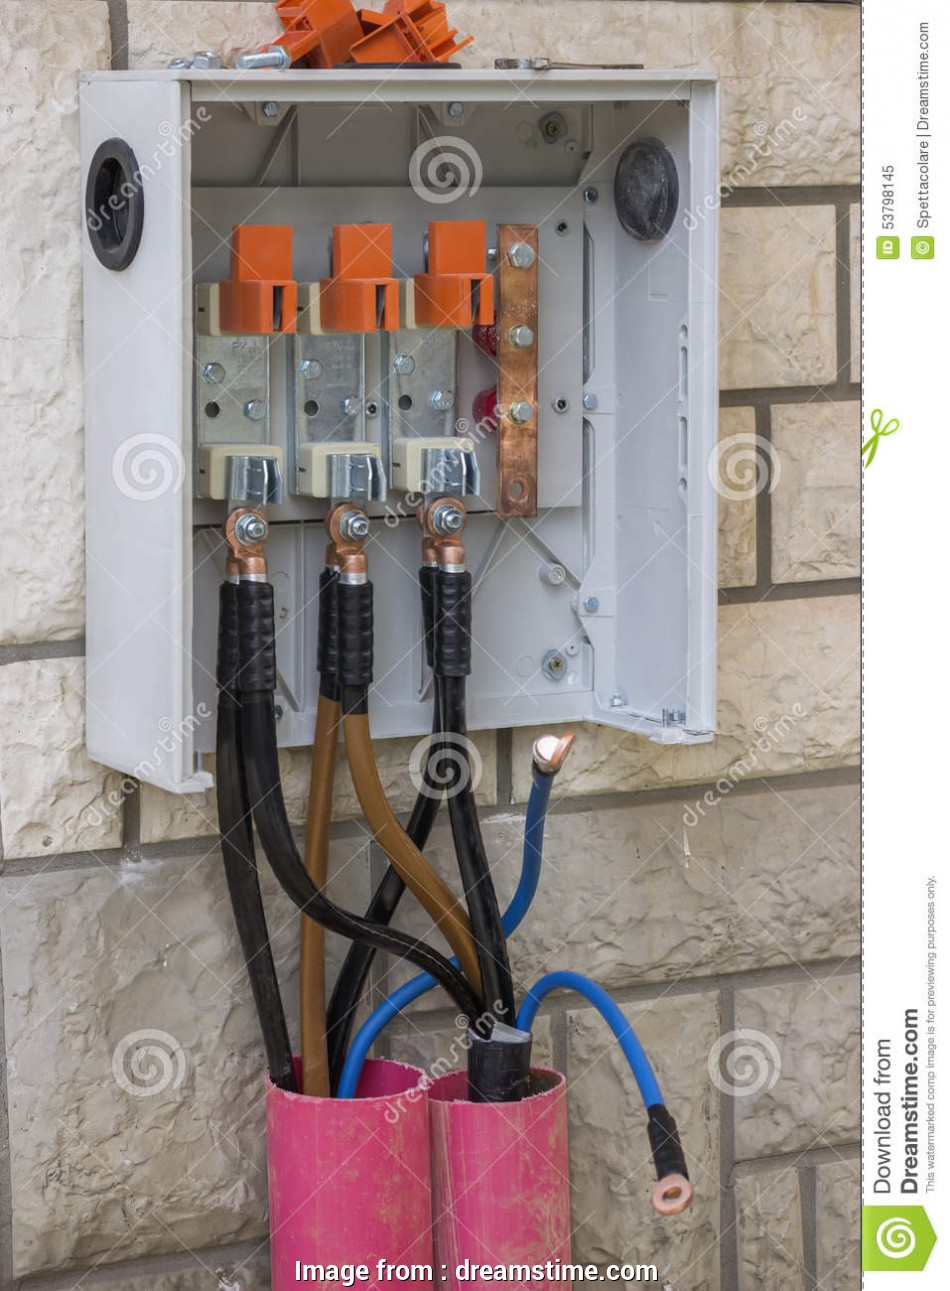 electrical panel wiring 3 phase 3 Phase High Voltage Breaker, Stock Image, Image of installing 16 Nice Electrical Panel Wiring 3 Phase Collections